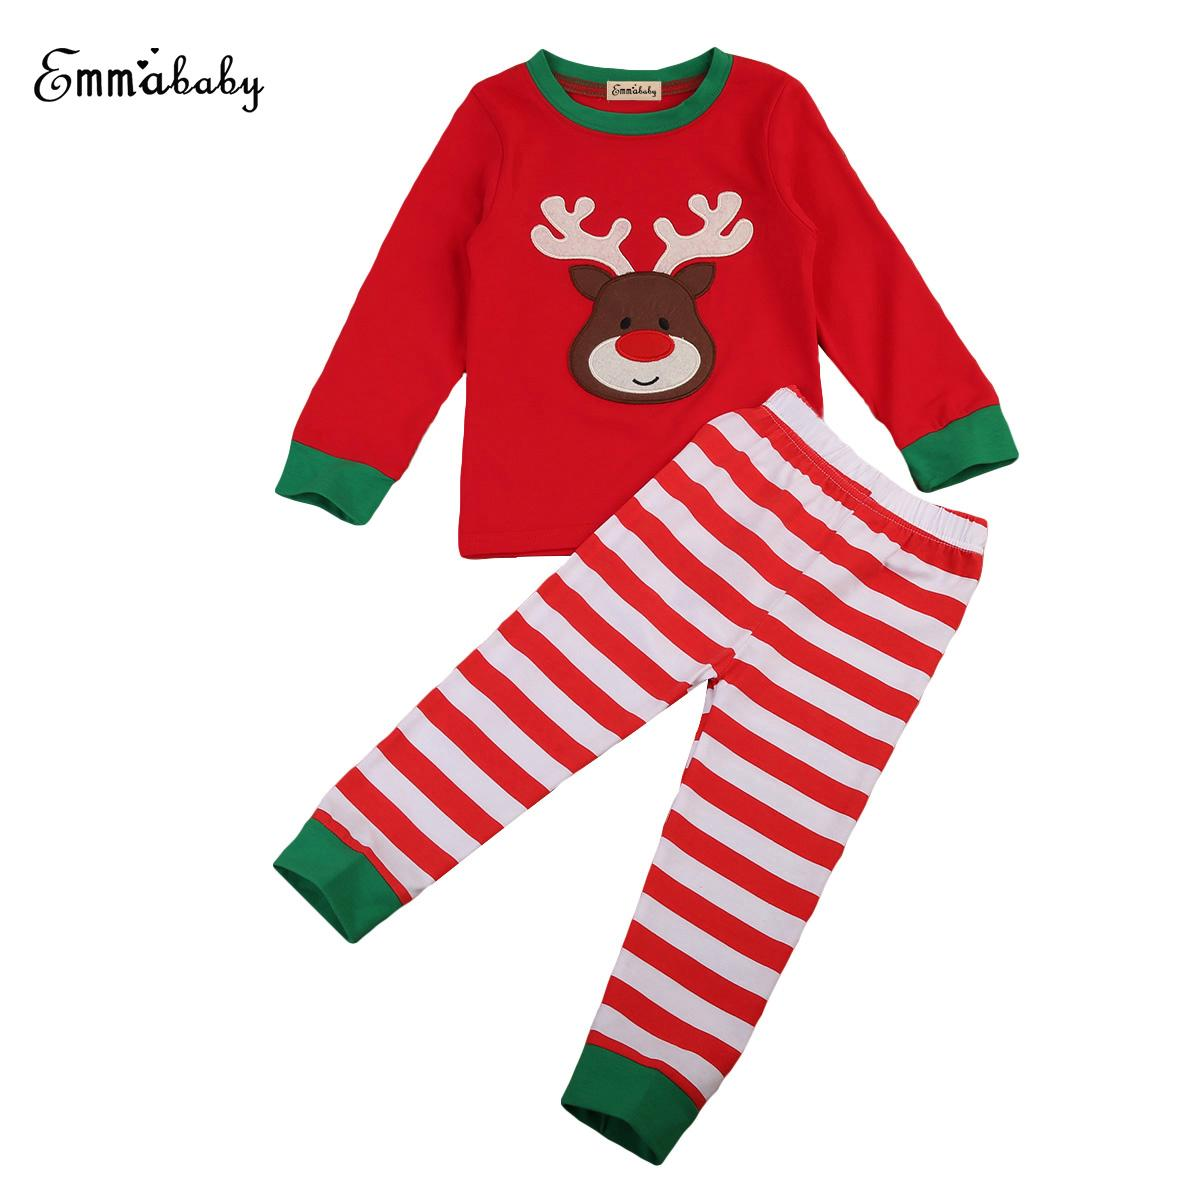 Kids Boy Girl Christmas Pajama Set Long Sleeve Tops+Striped Pant Nightwear  Toddler Baby Boys Girls Clothes 1 7Y Holiday Pjs For Kids Cheap Kids Pyjamas  From ... 71e3c5003